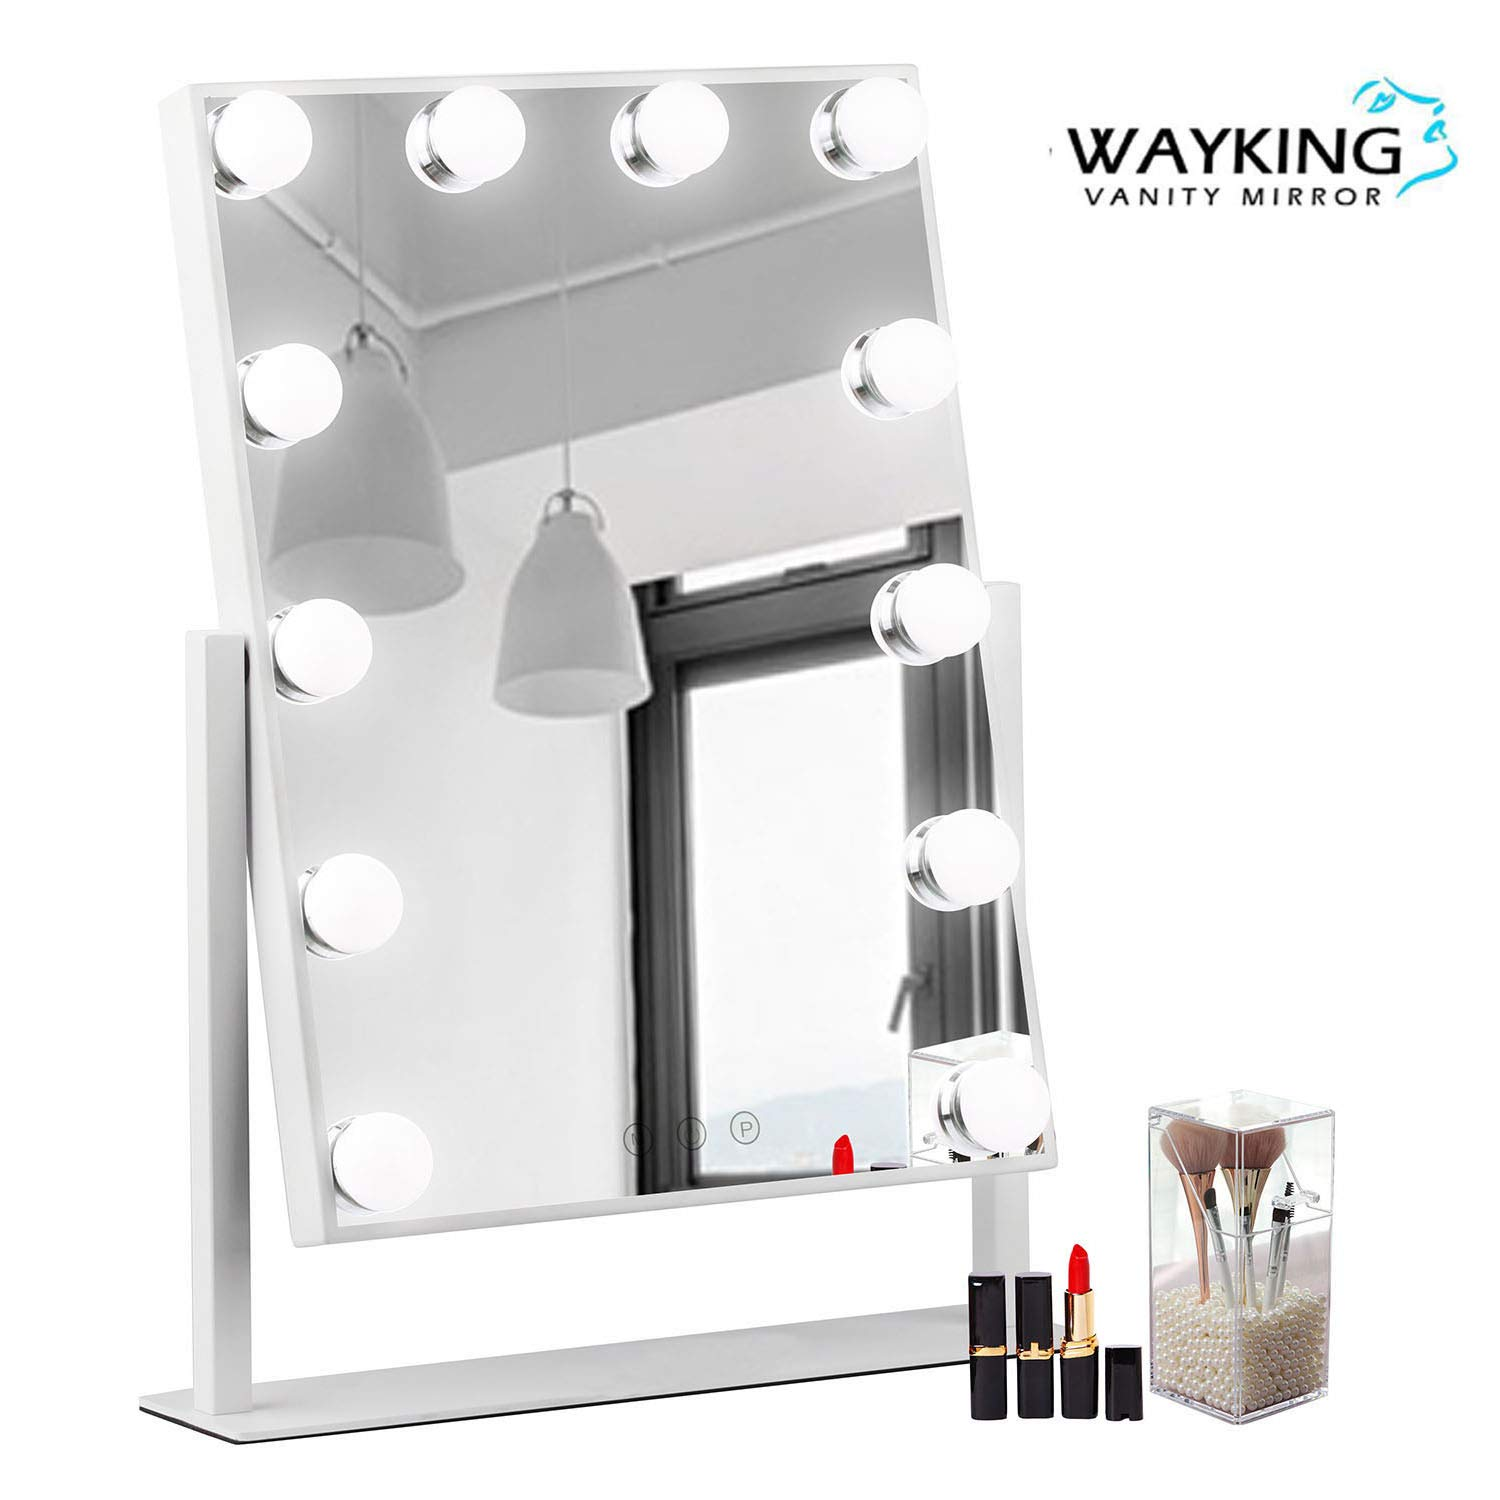 Lighted Vanity Mirror.Wayking Makeup Mirror With Lights Lighted Vanity Mirror With 12 Led Bulbs And Touch Dimmer Rotary